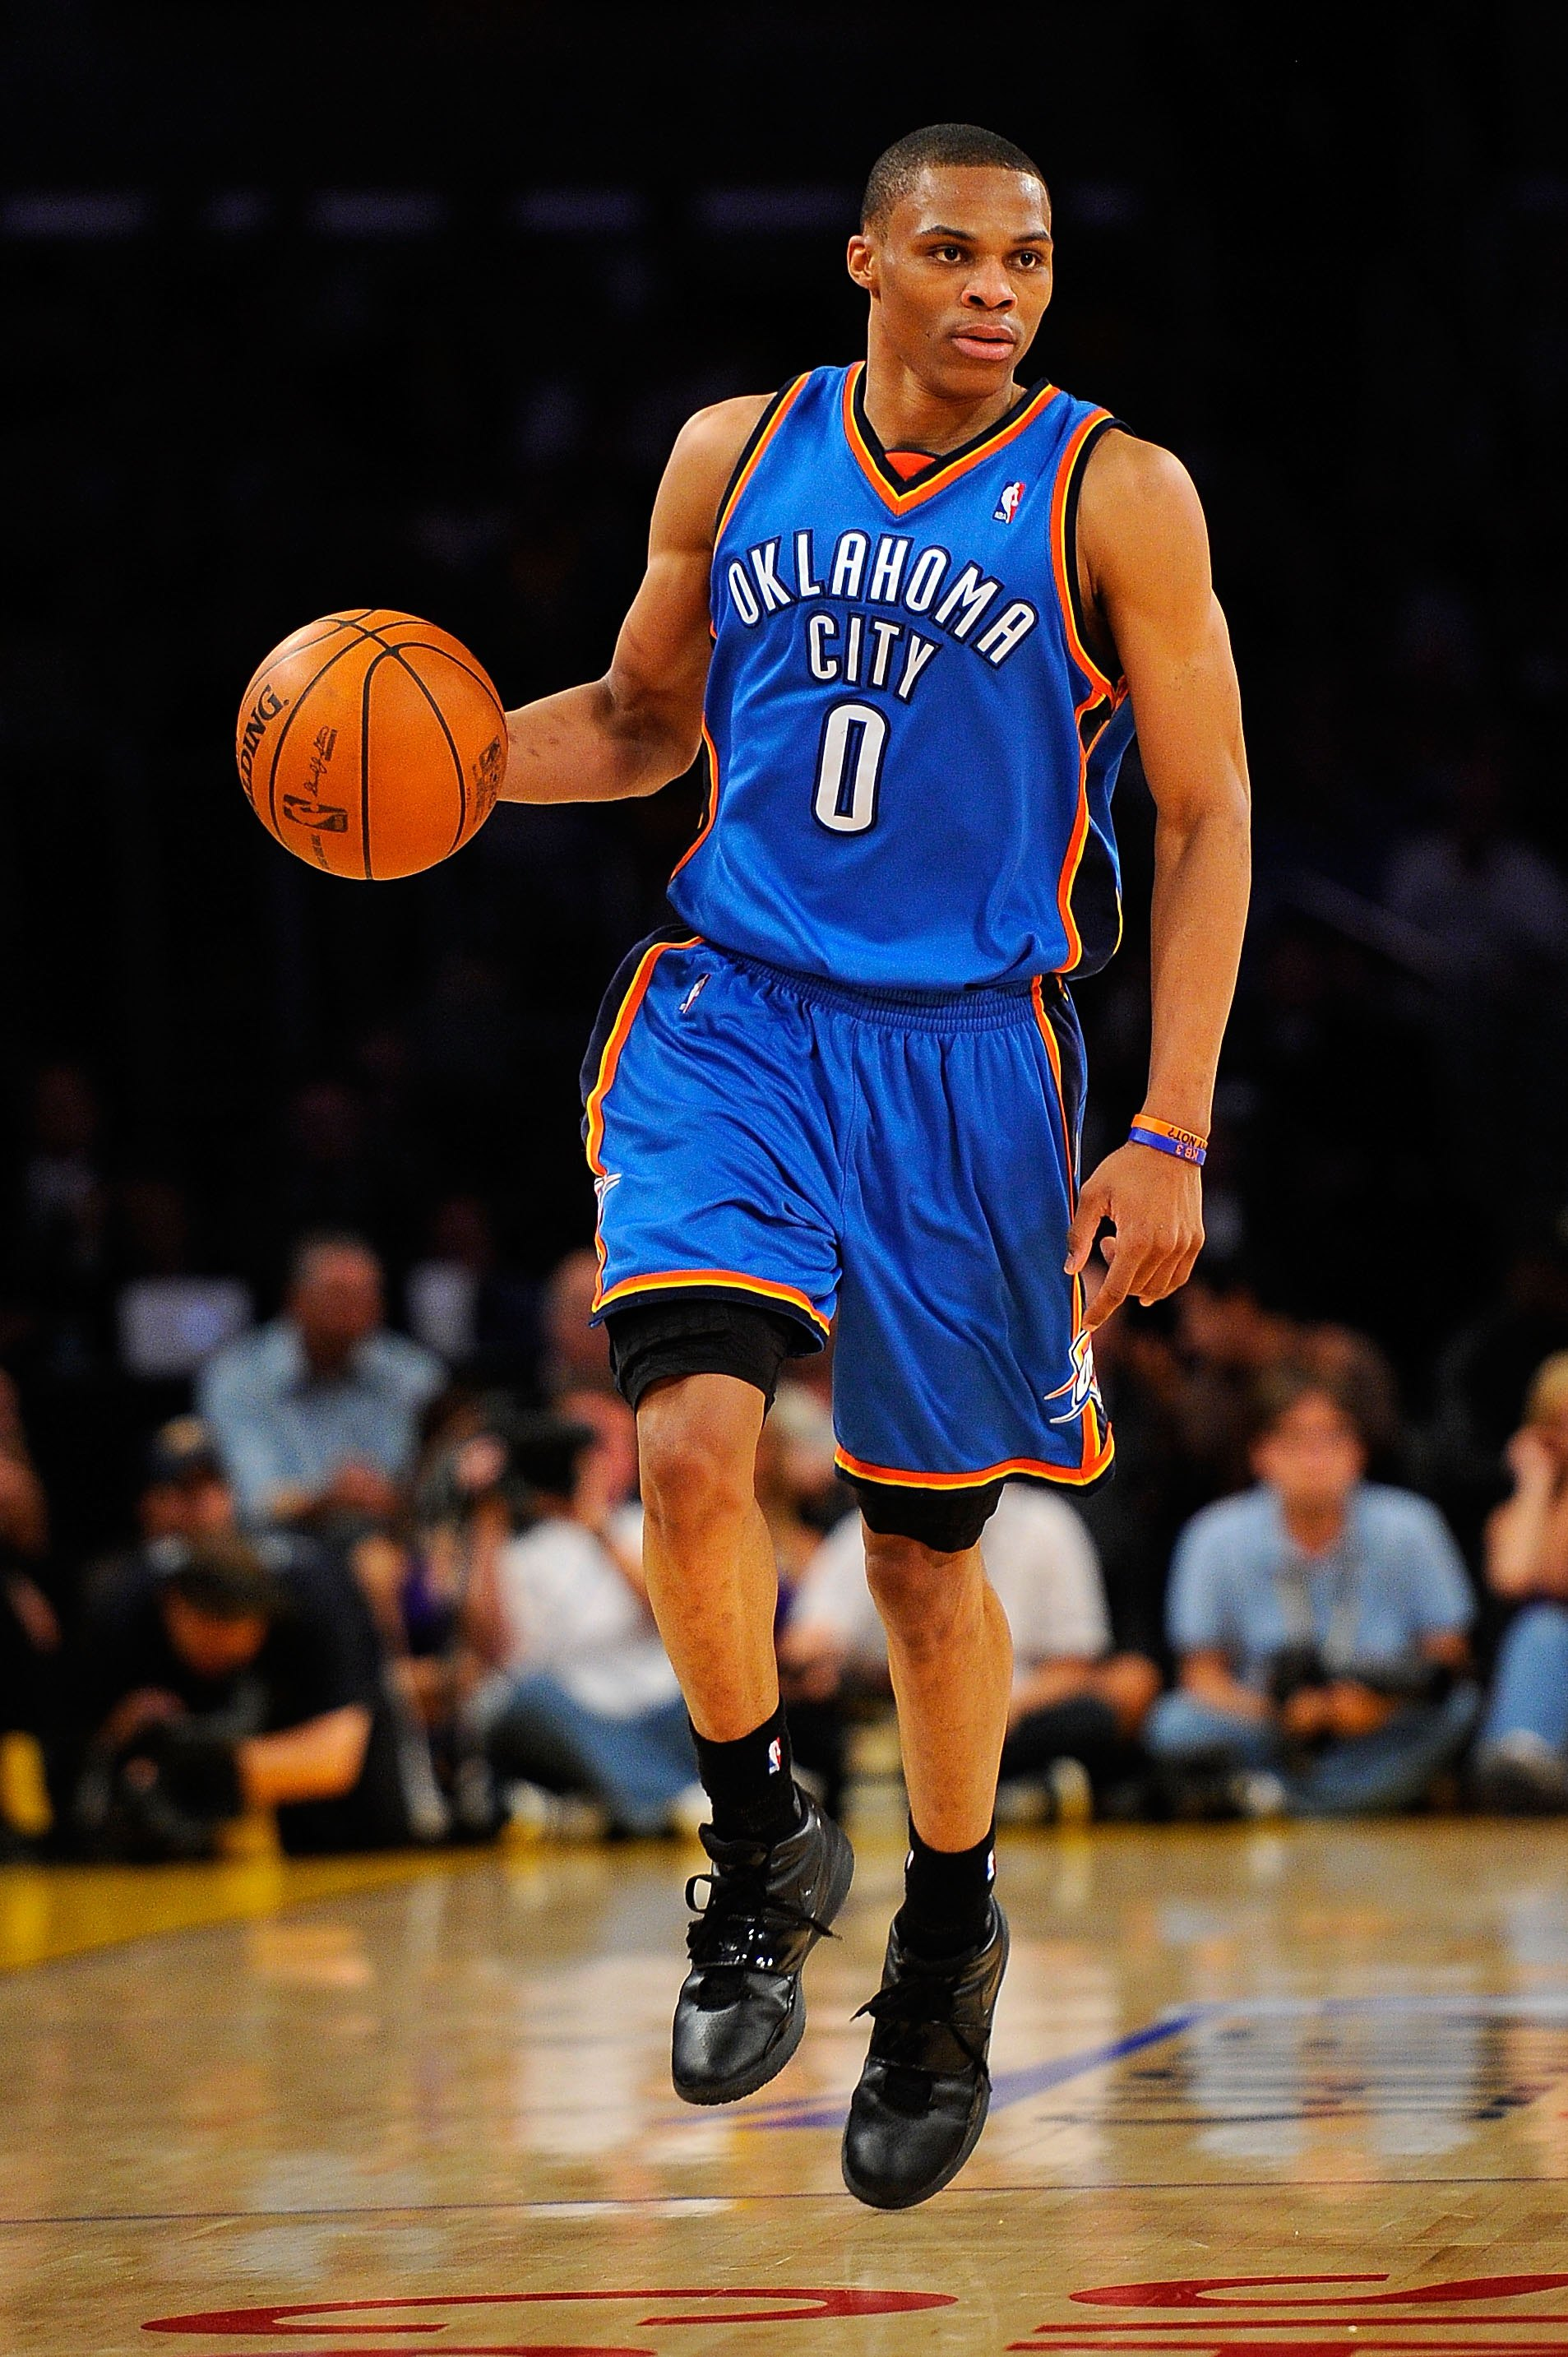 LOS ANGELES, CA - APRIL 27:  Russell Westbrook #0 of the Oklahoma City Thunder moves the ball while taking on the Los Angeles Lakers during Game Five of the Western Conference Quarterfinals of the 2010 NBA Playoffs at Staples Center on April 27, 2010 in L